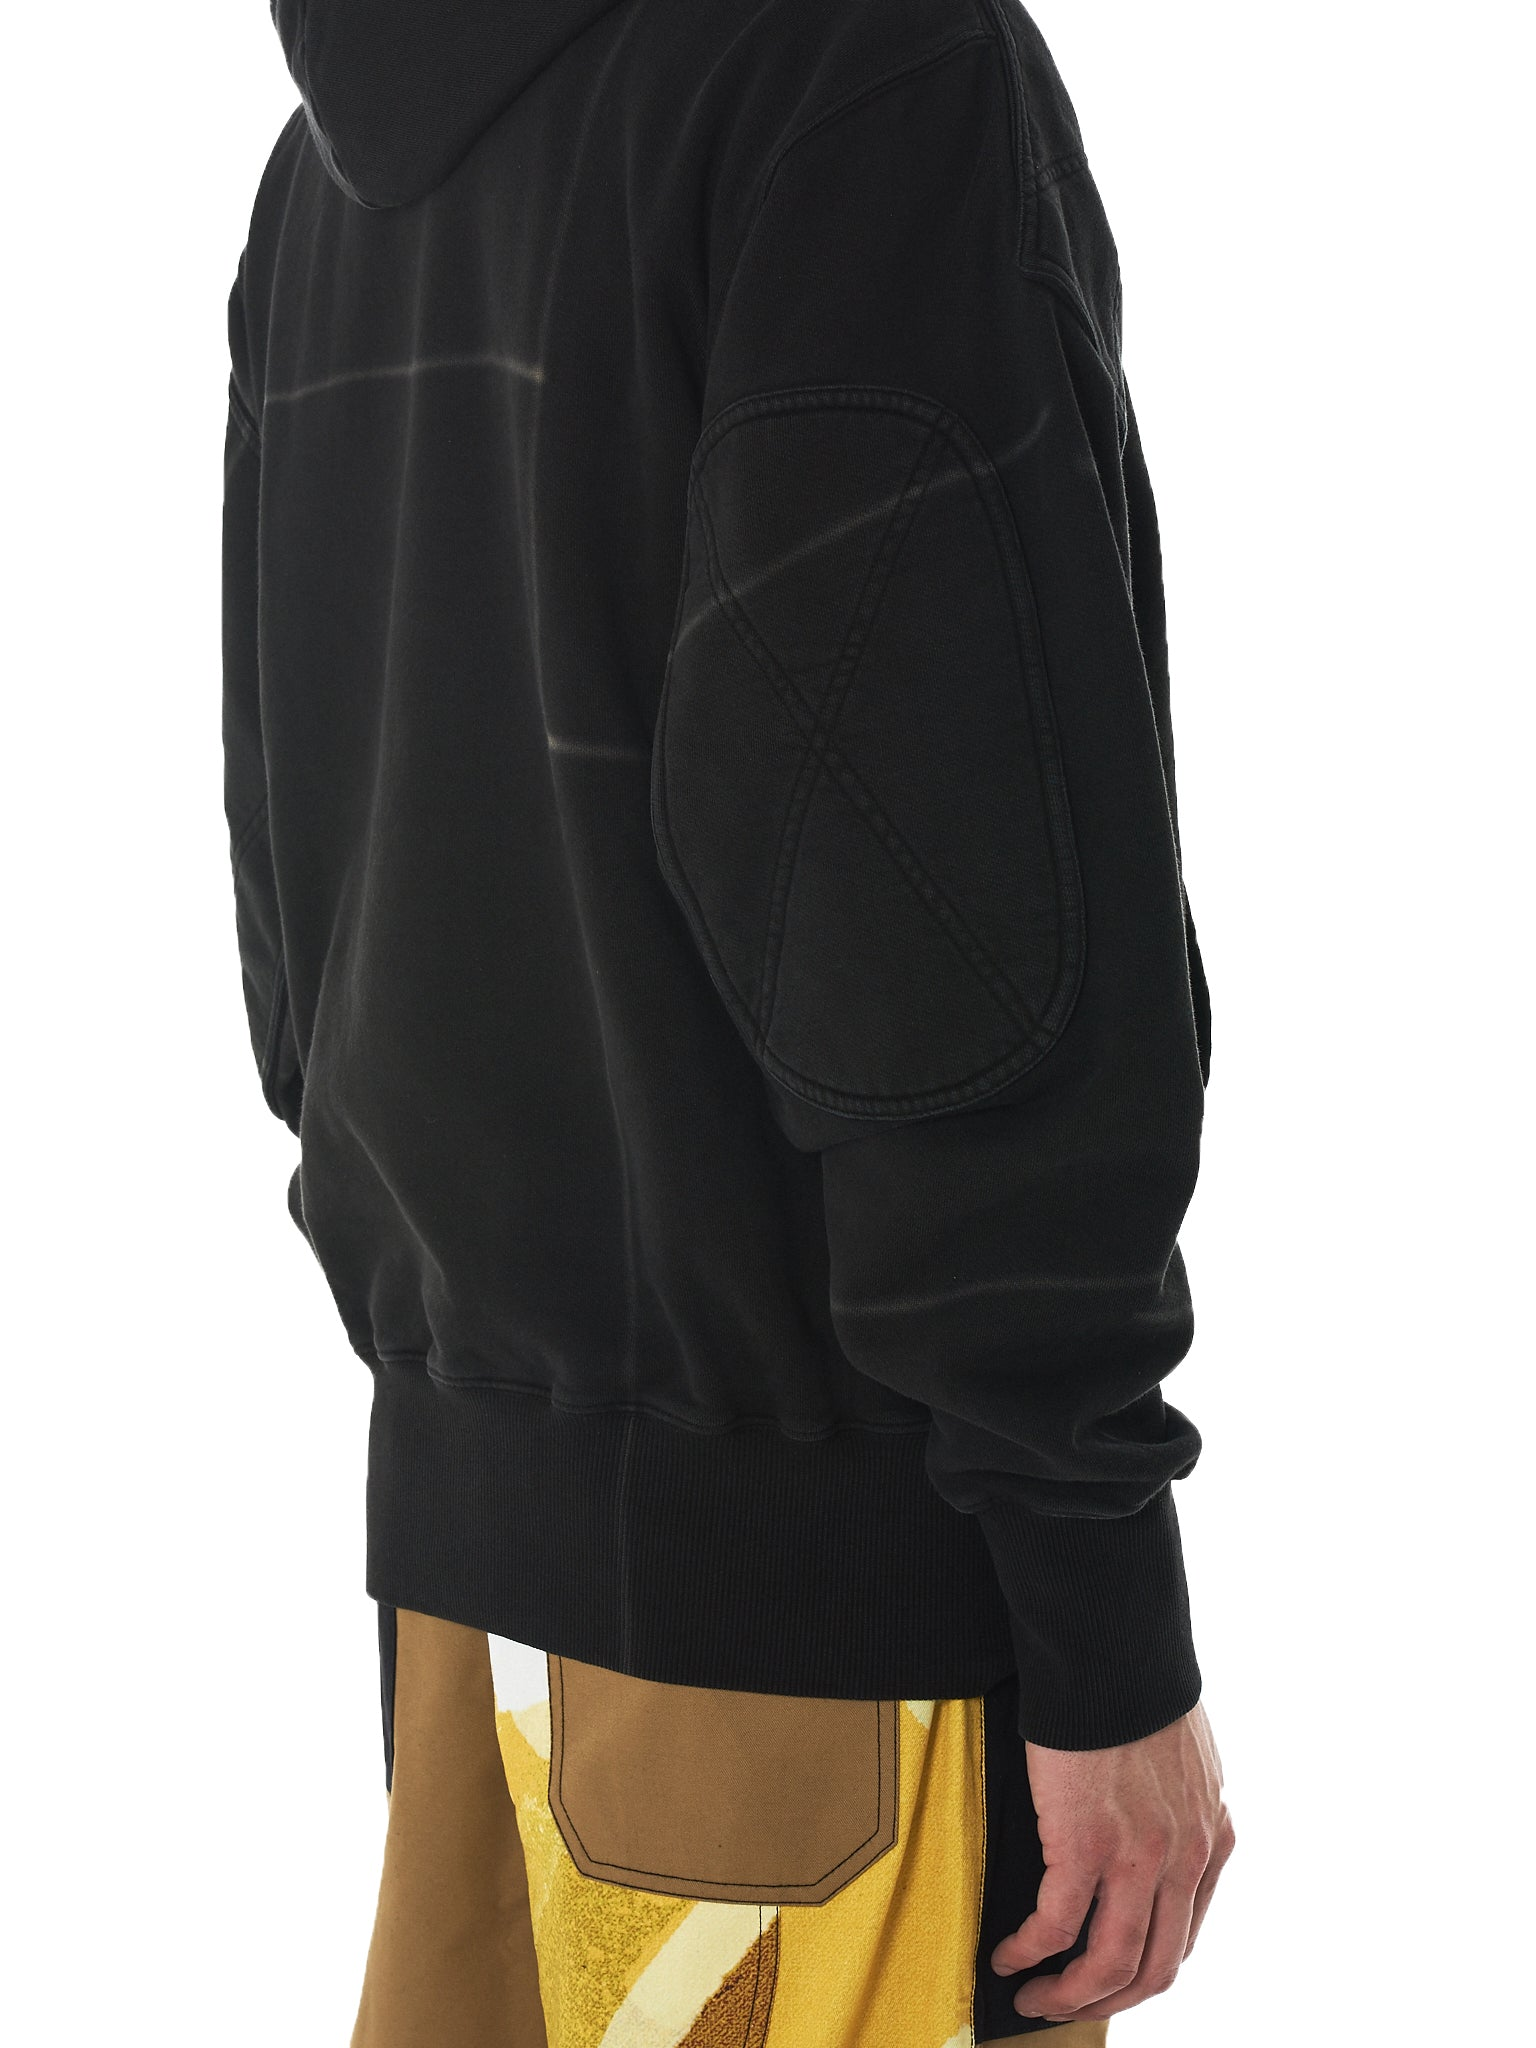 Liam Hodges Hooded Pullover - Hlorenzo Detail 1